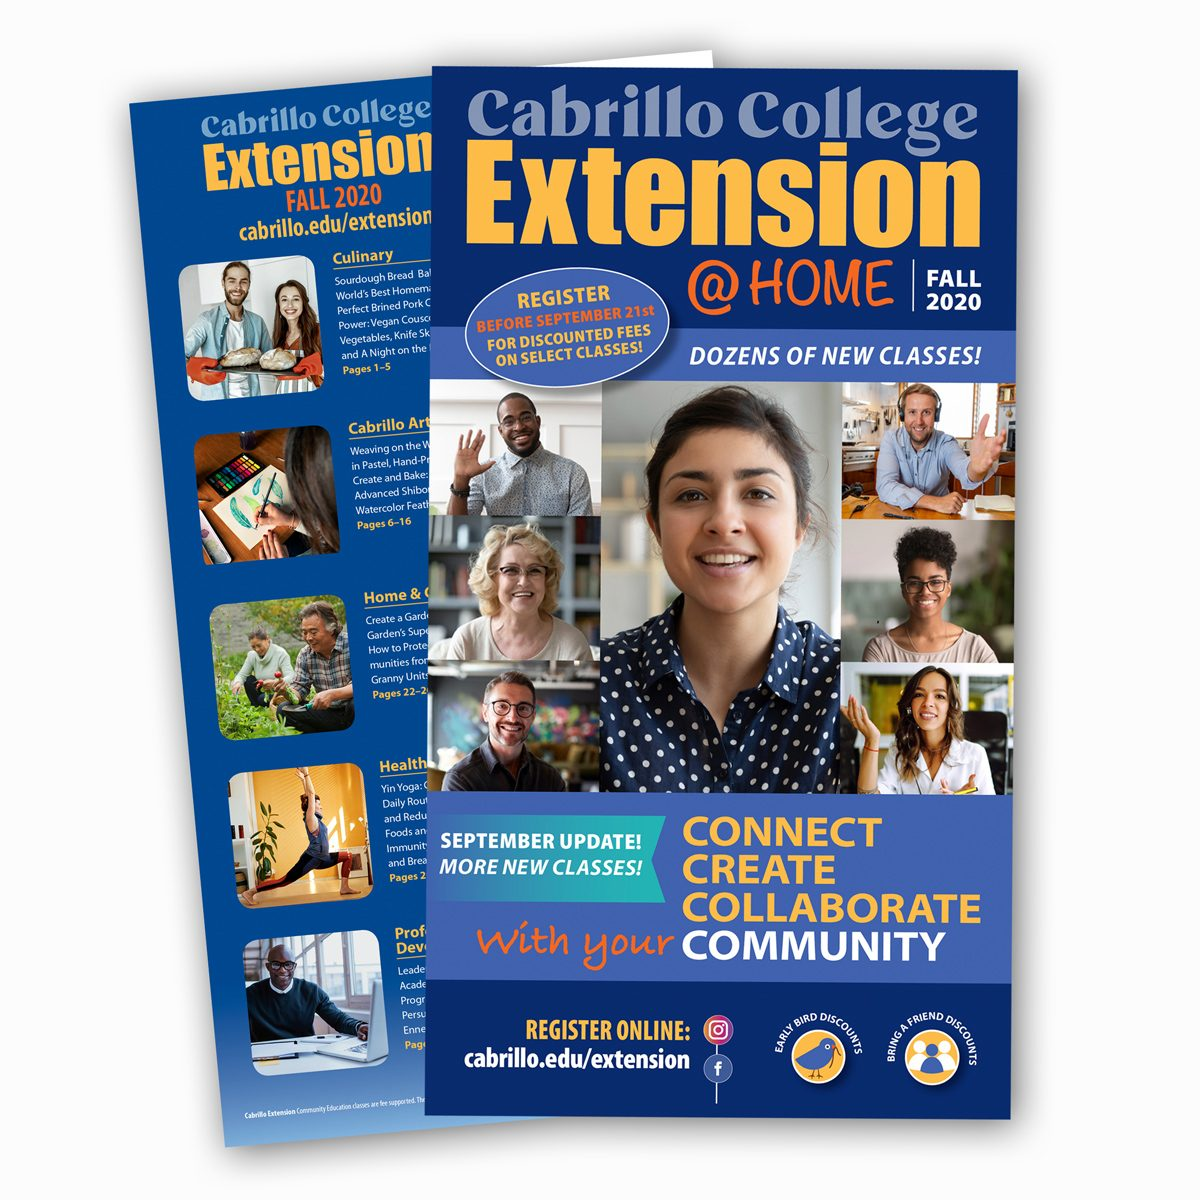 Cabrillo Extension Fall 2020 @Home catalog, front & back